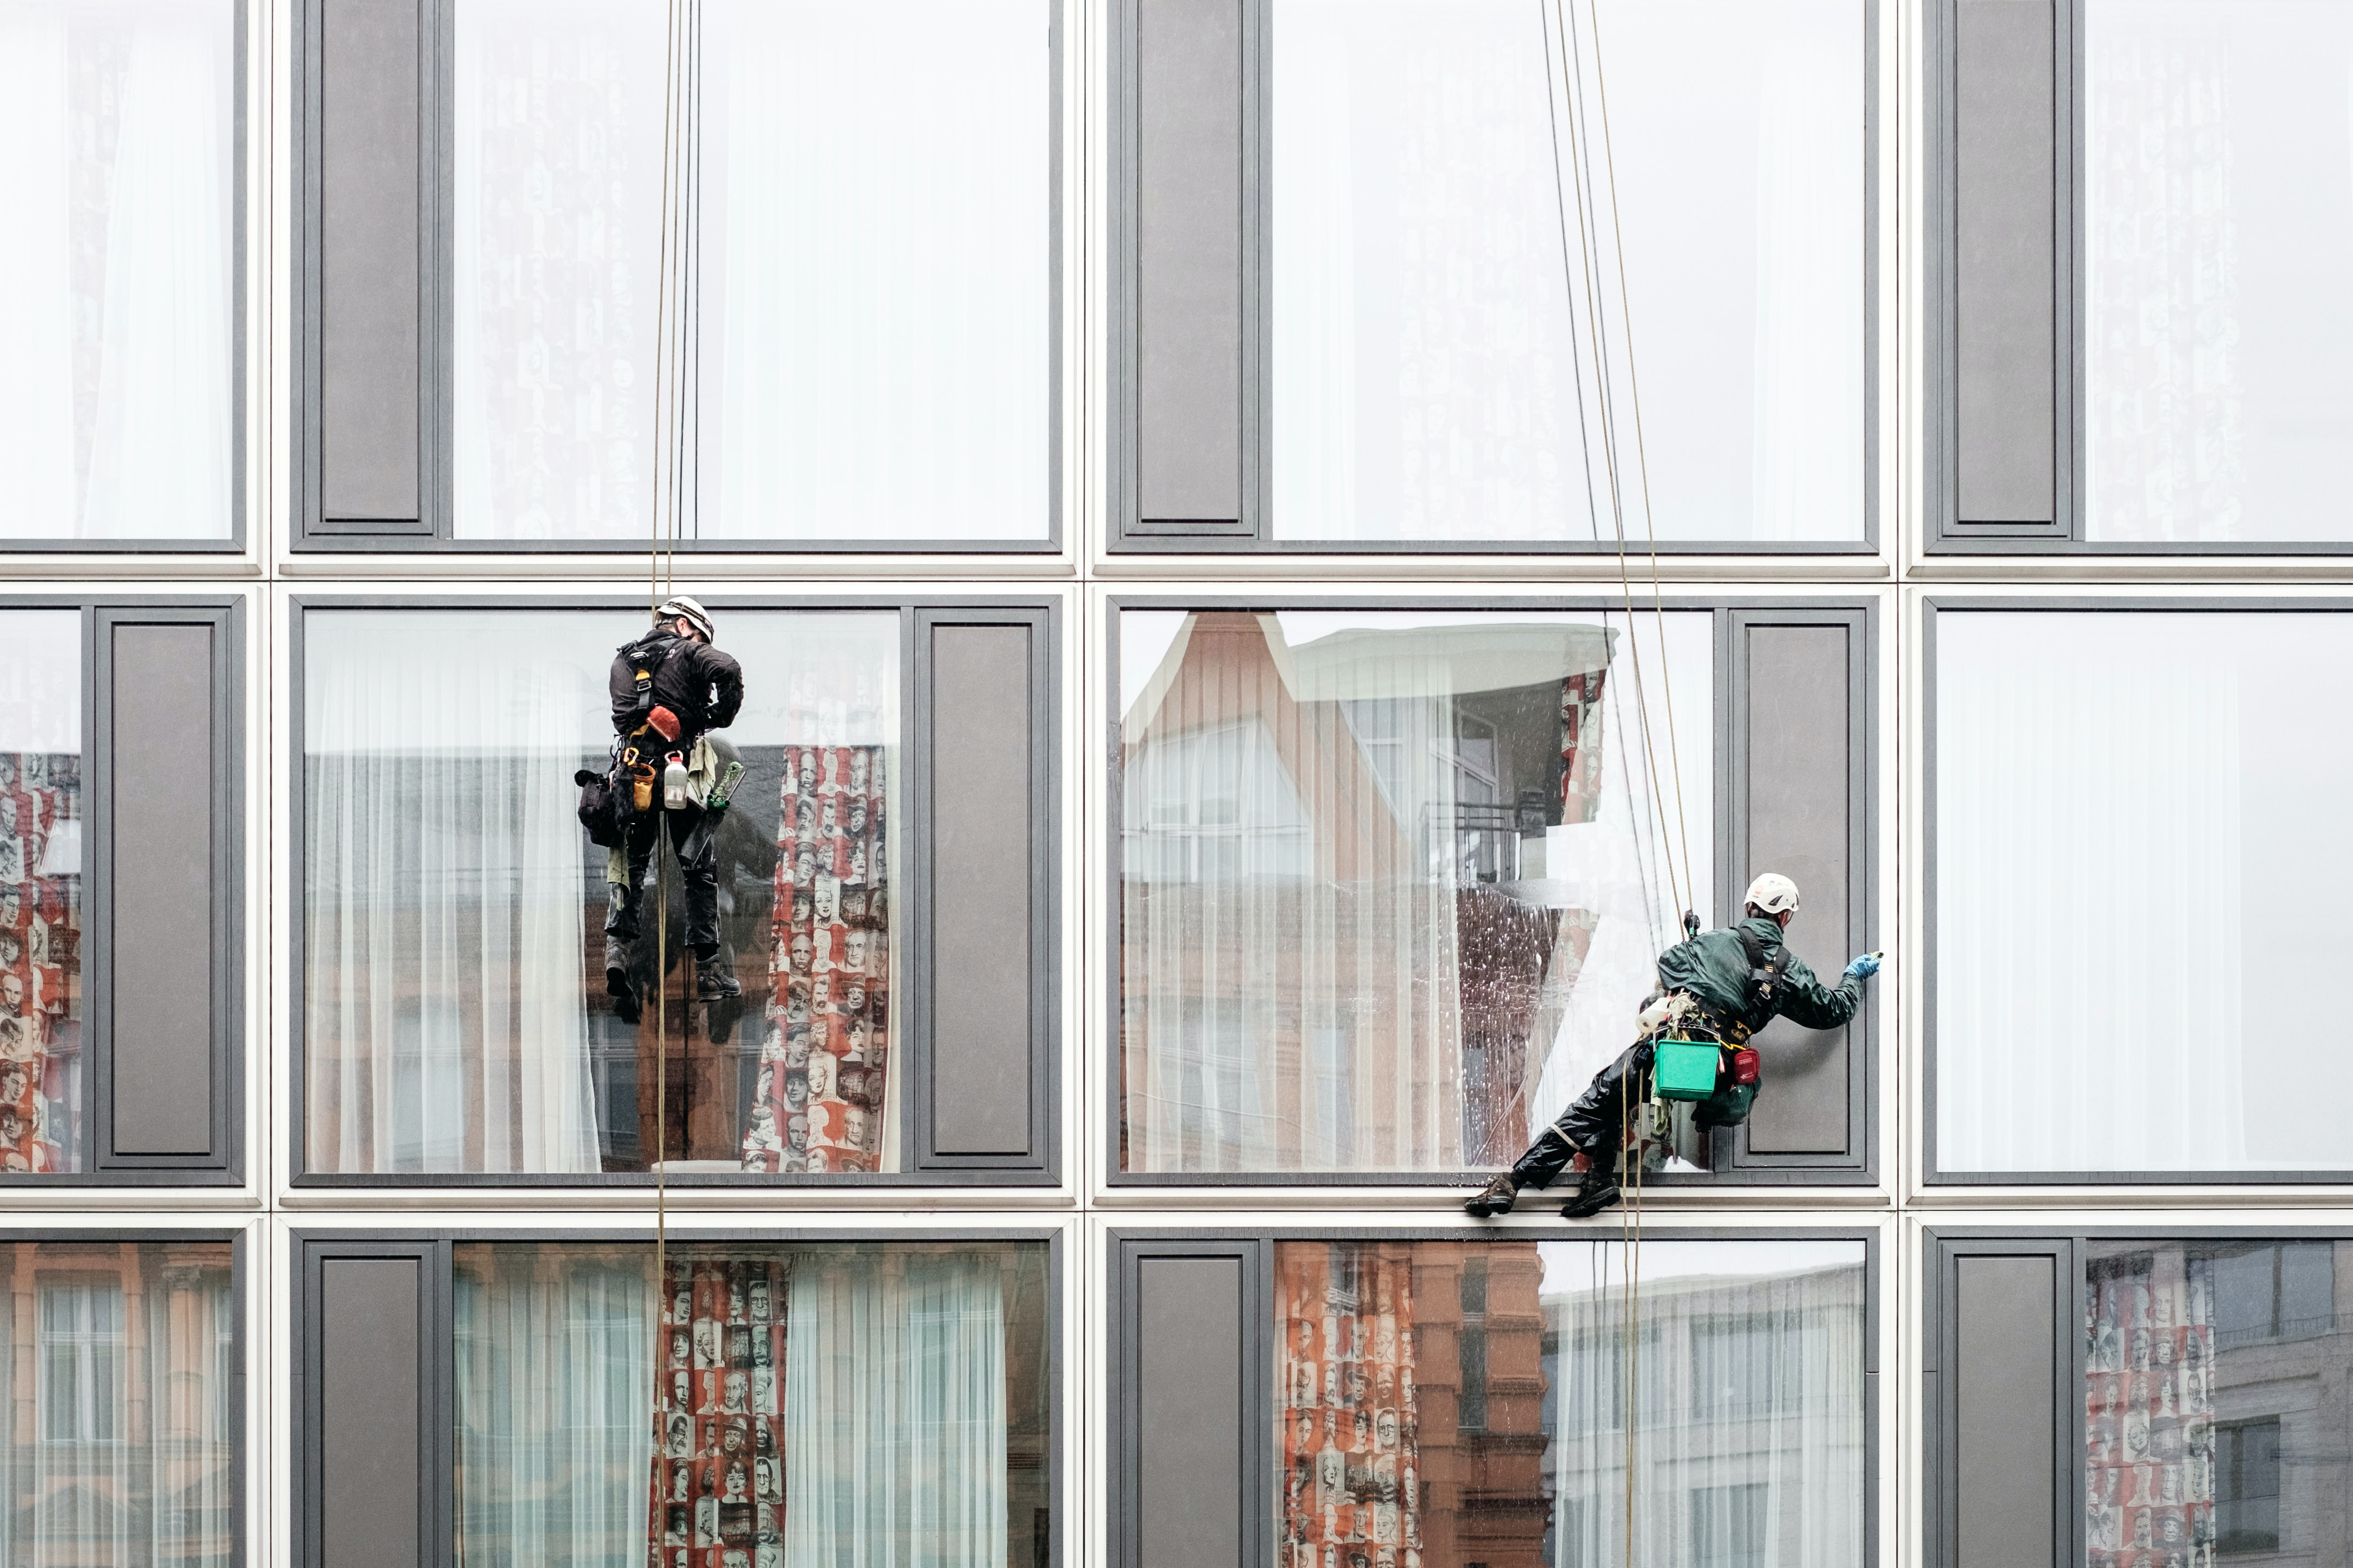 Two window cleaners cleaning the windows of a building in Berlin